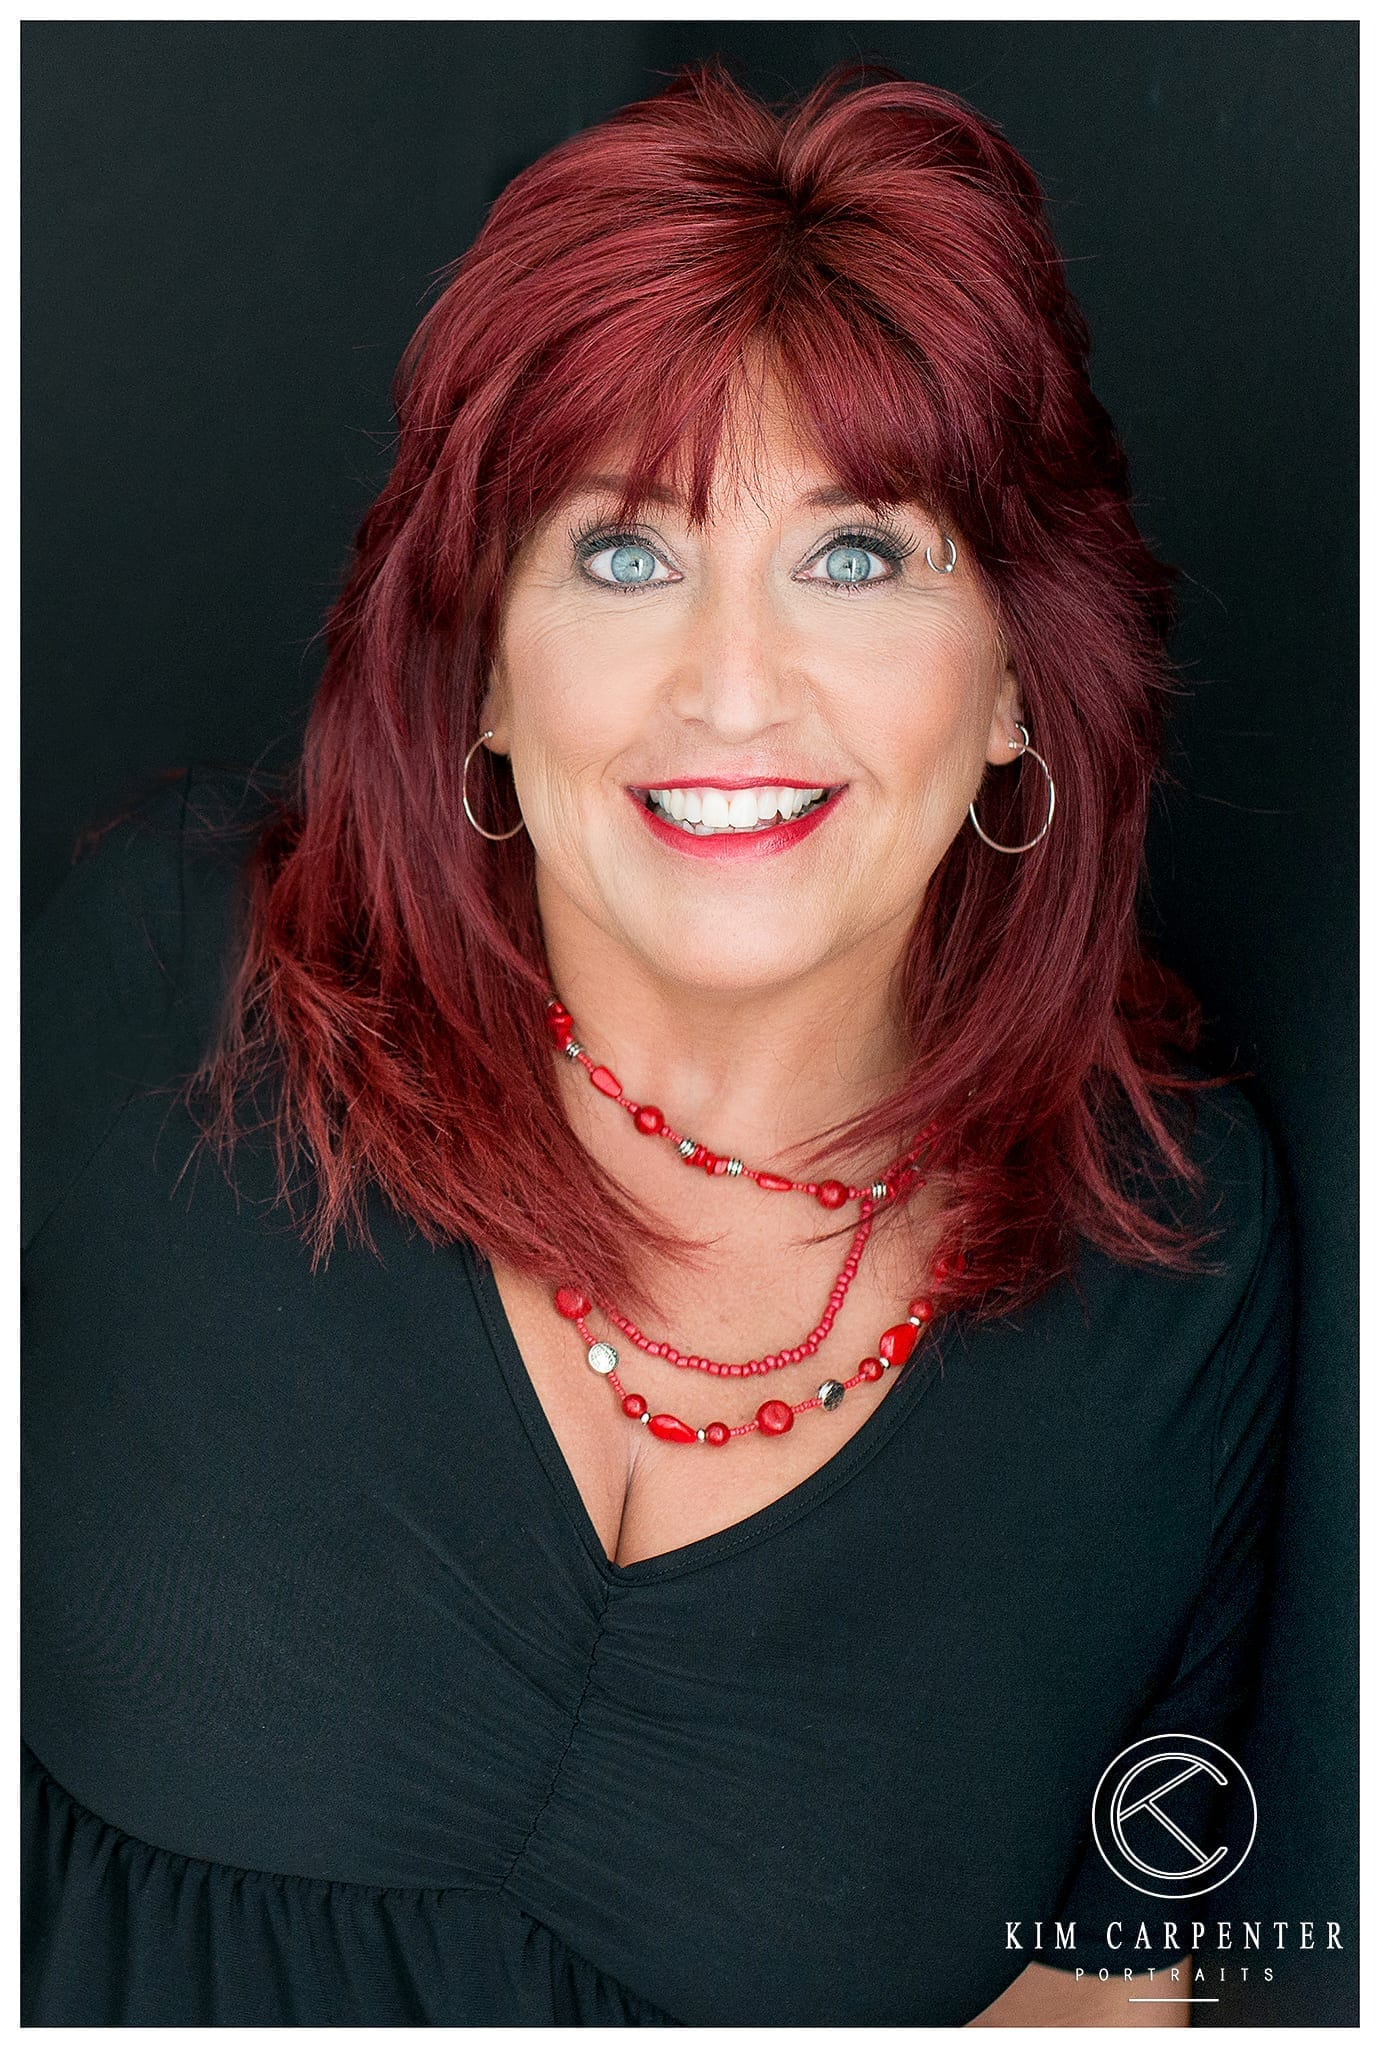 Woman smiling at camera with a black shirt and red necklace. Lakeland Photographer, professional headshots